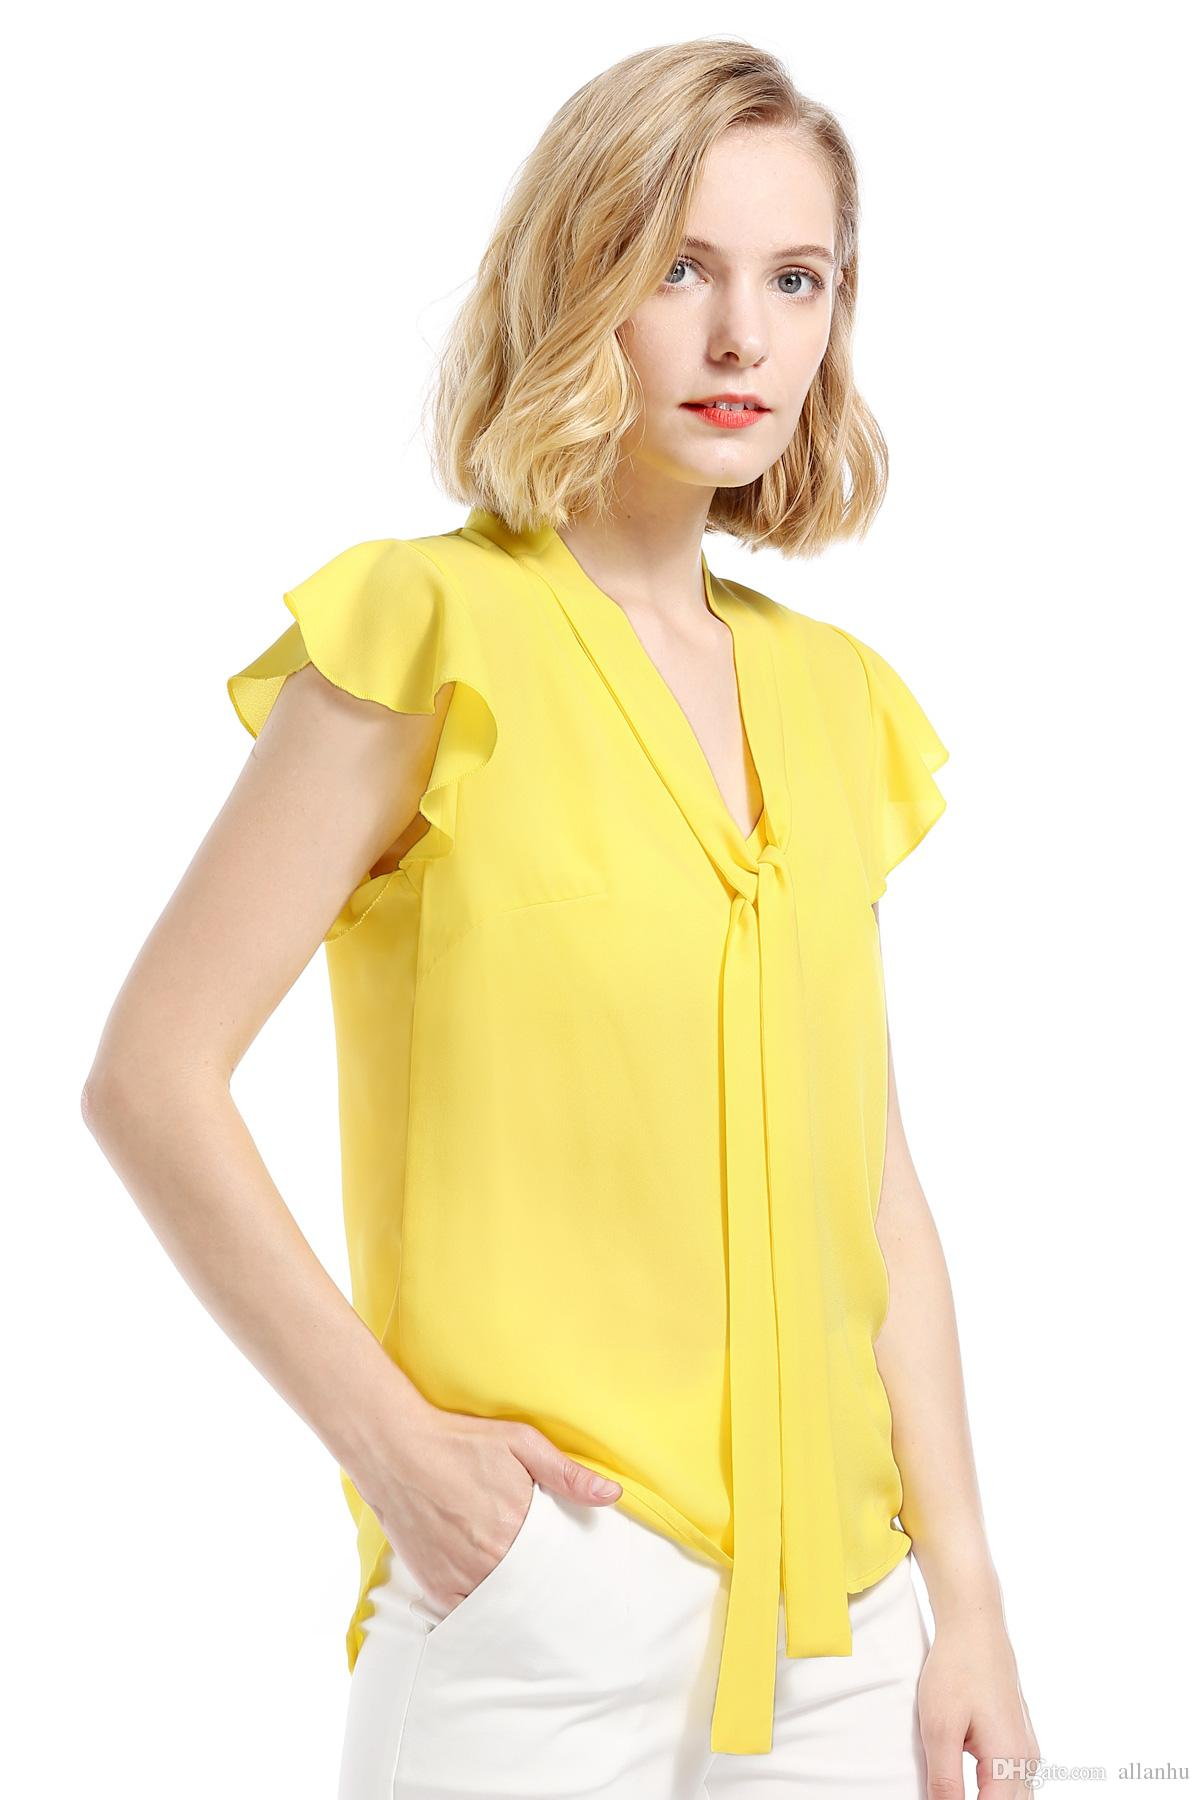 5ba31acf0e2c6 2019 2018 Spring Summer Print Blouses For Women Yellow Chiffon Ruffles  Ribbon Female Shirt Sexy Casual Ladies Tops OL Office Lady FS3465 From  Allanhu